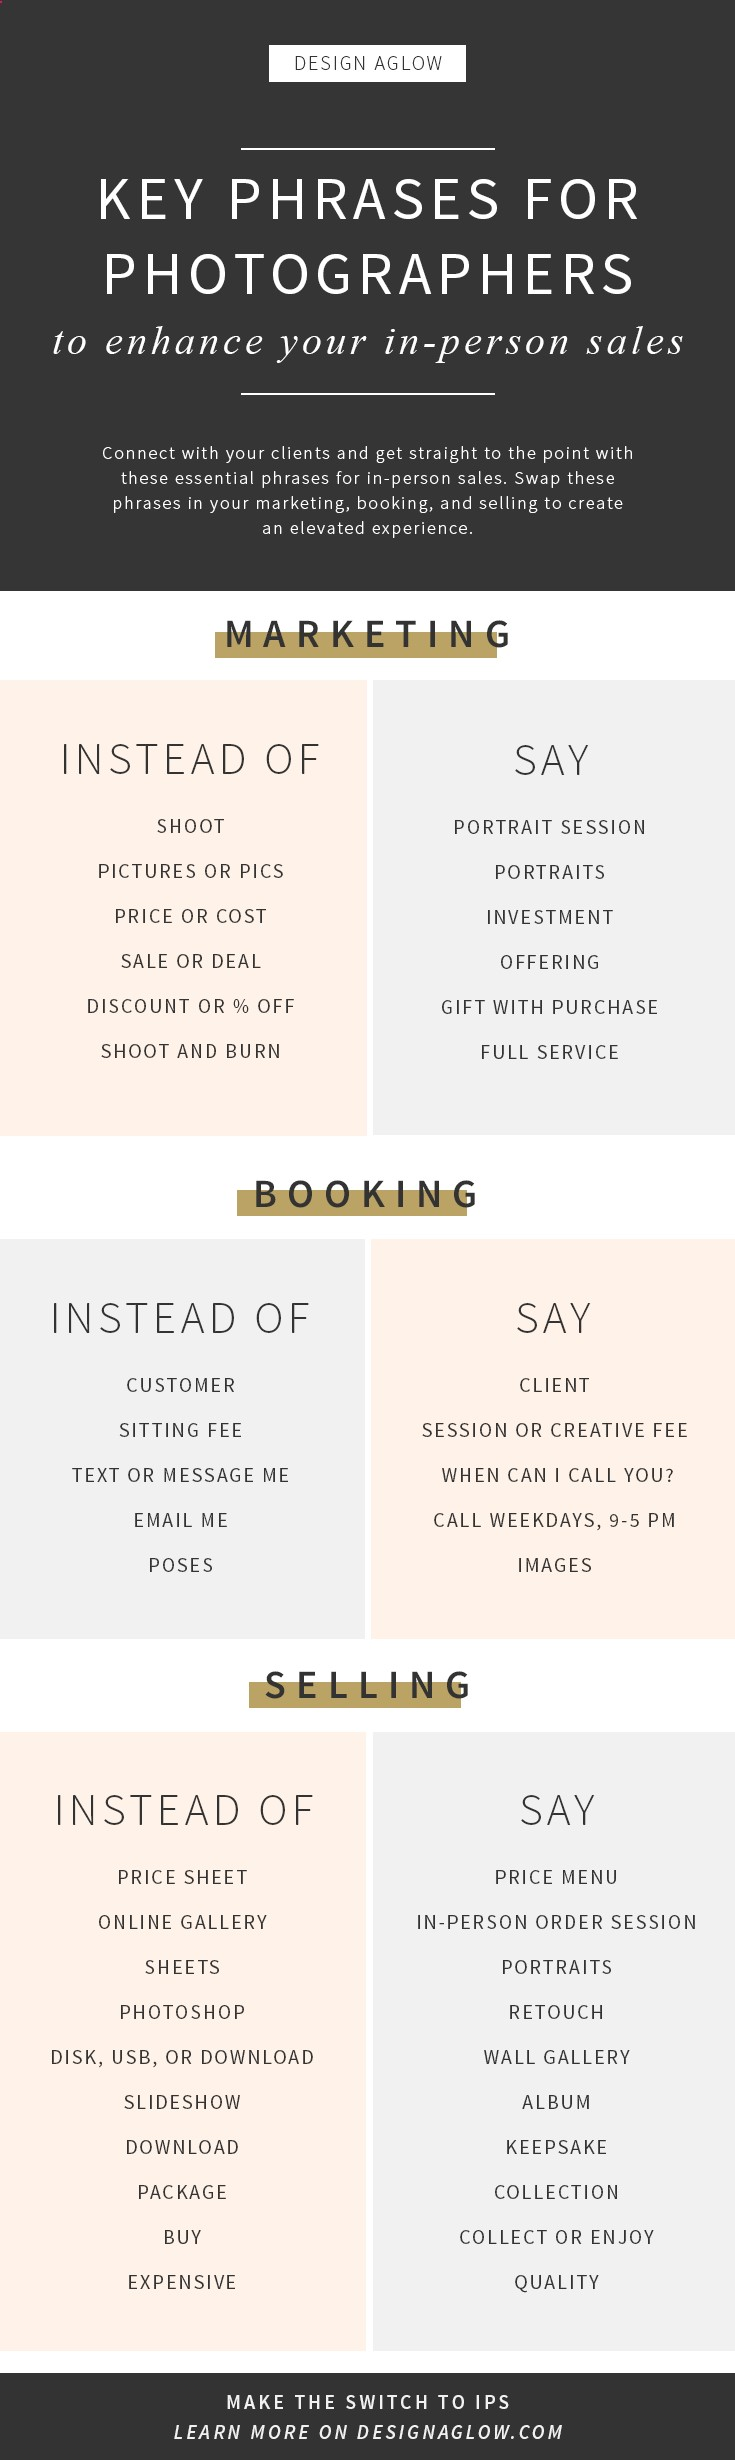 Swappable marketing phrases for photography by Design Aglow. Make more money for your business with in person sales!https://designaglow.com/pages/ultimate-in-person-sales-course-for-photographers?utm_campaign=coschedule&utm_source=pinterest&utm_medium=Design%20Aglow&utm_content=Key%20Phrases%20for%20Photographers%20to%20Enhance%20Your%20In-Person%20Sales